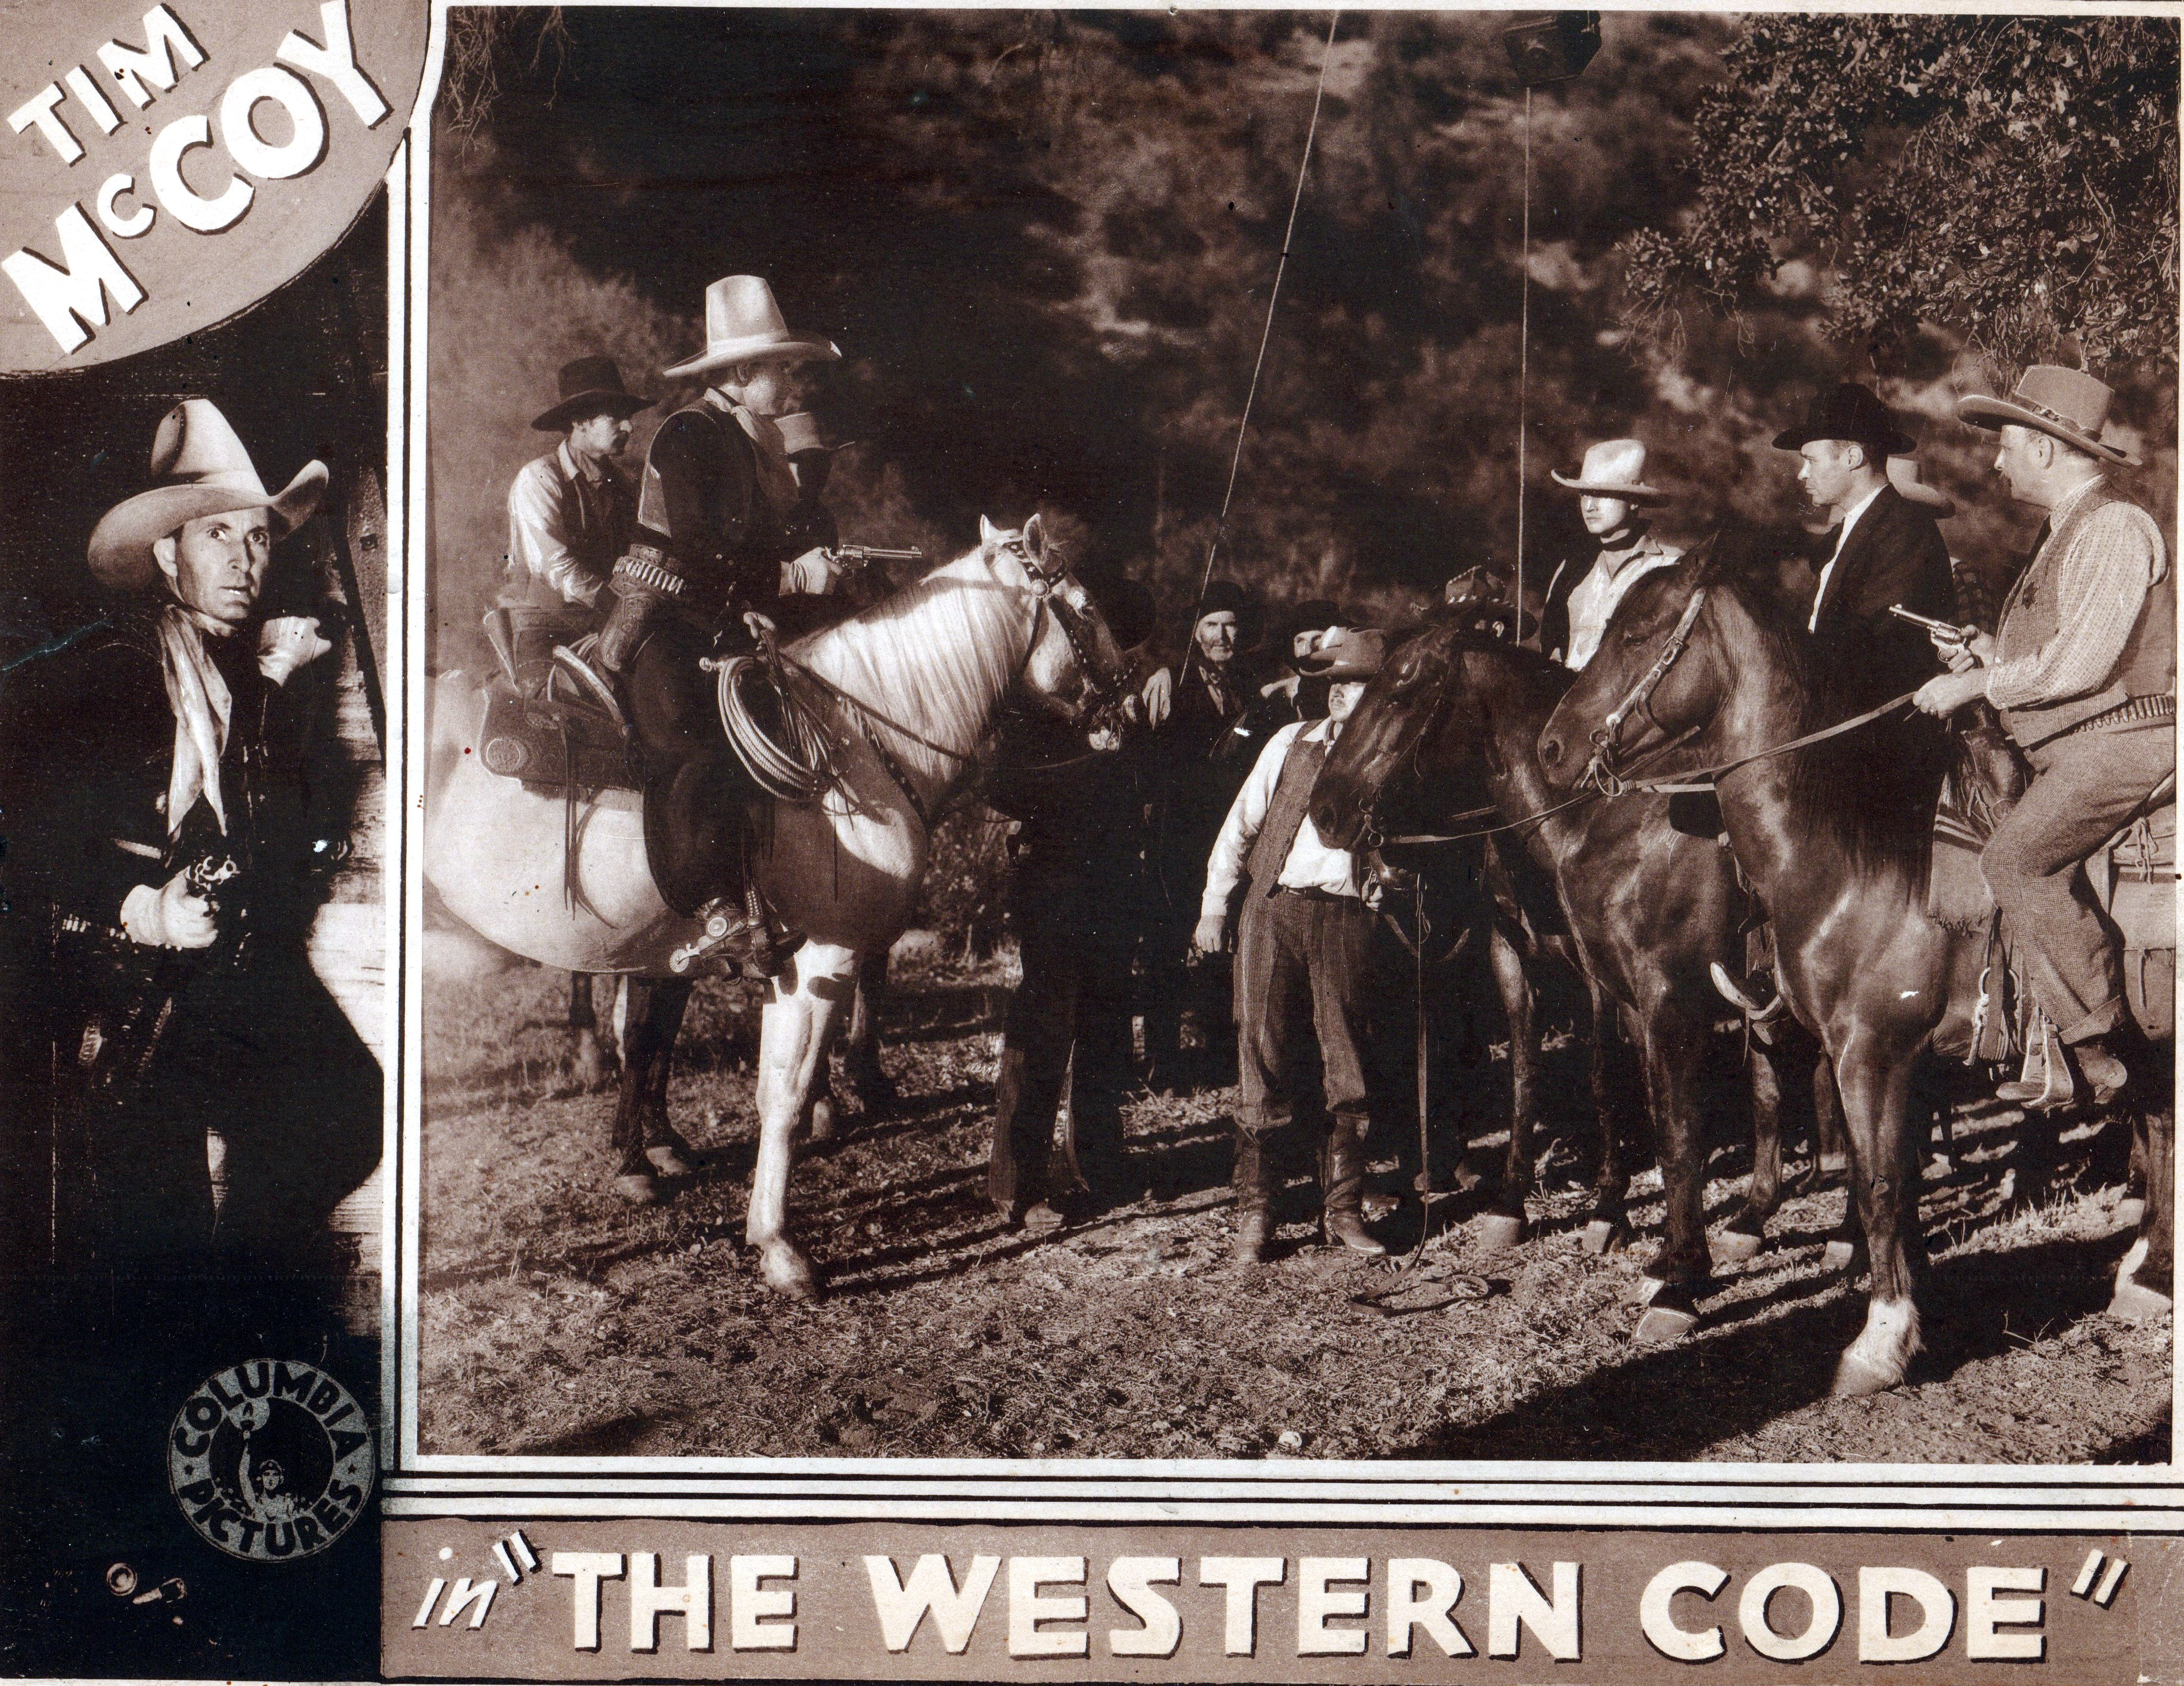 Tim McCoy, Gordon De Main, and Dwight Frye in The Western Code (1932)